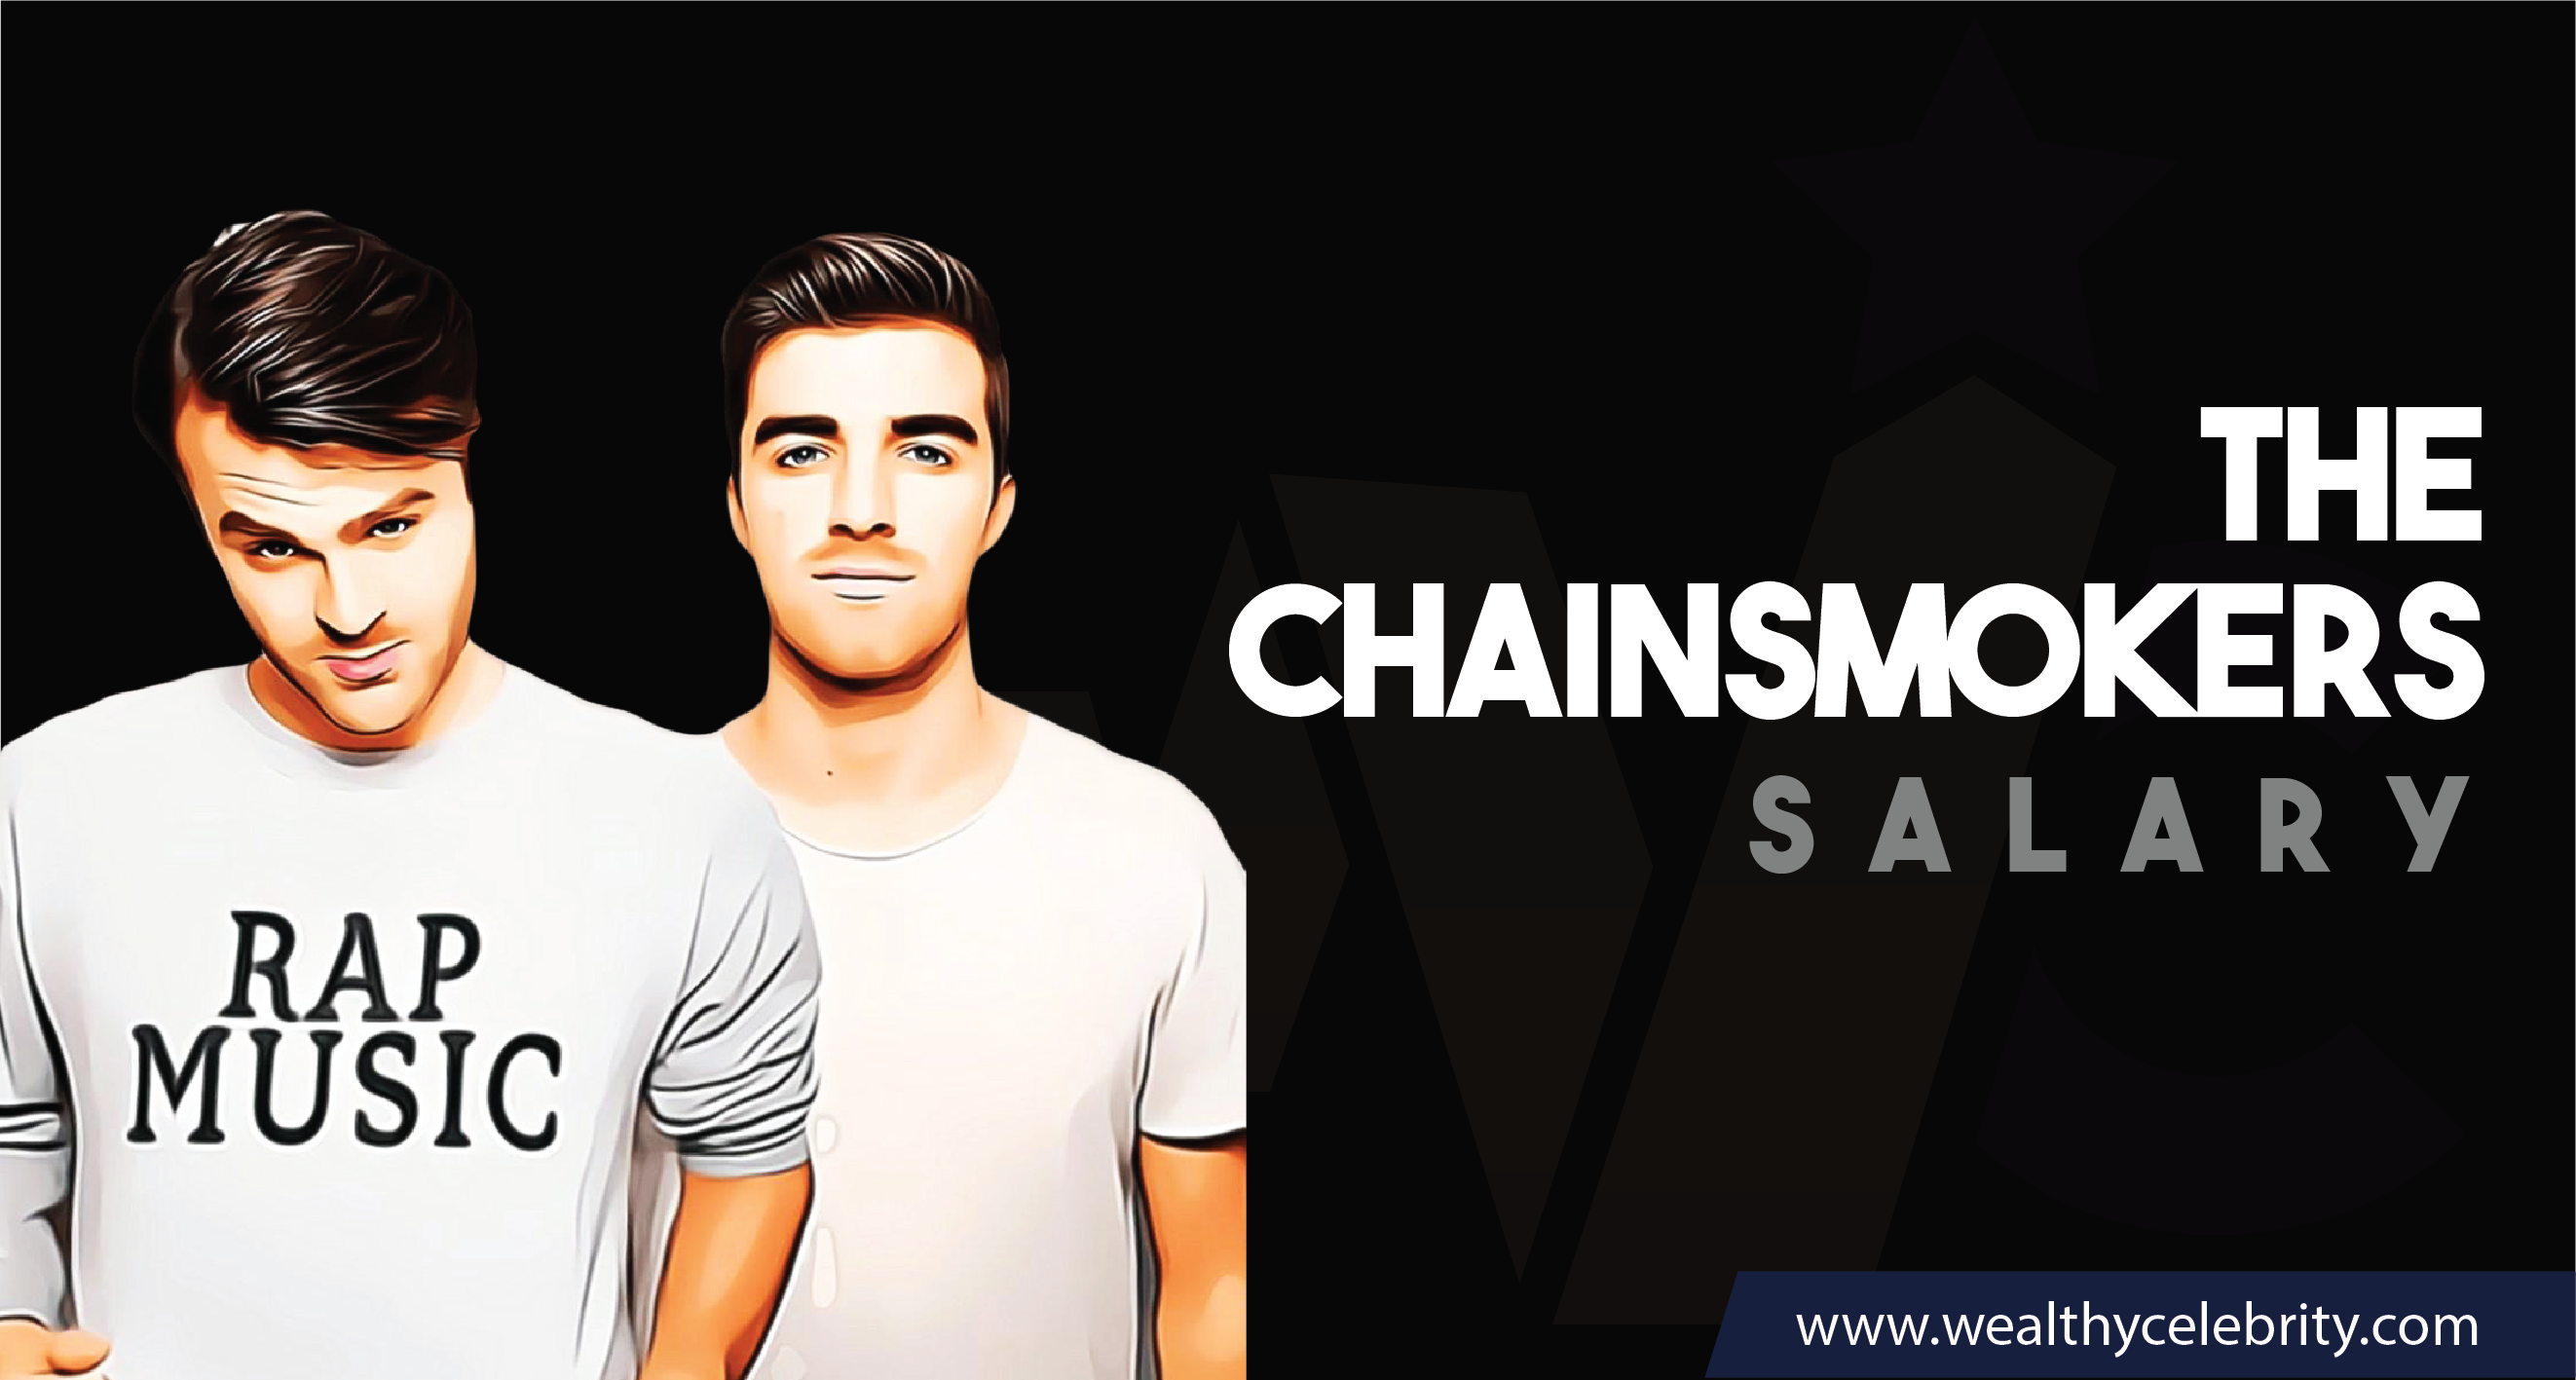 The Chainsmokers DJ - Current Salary Net Worth